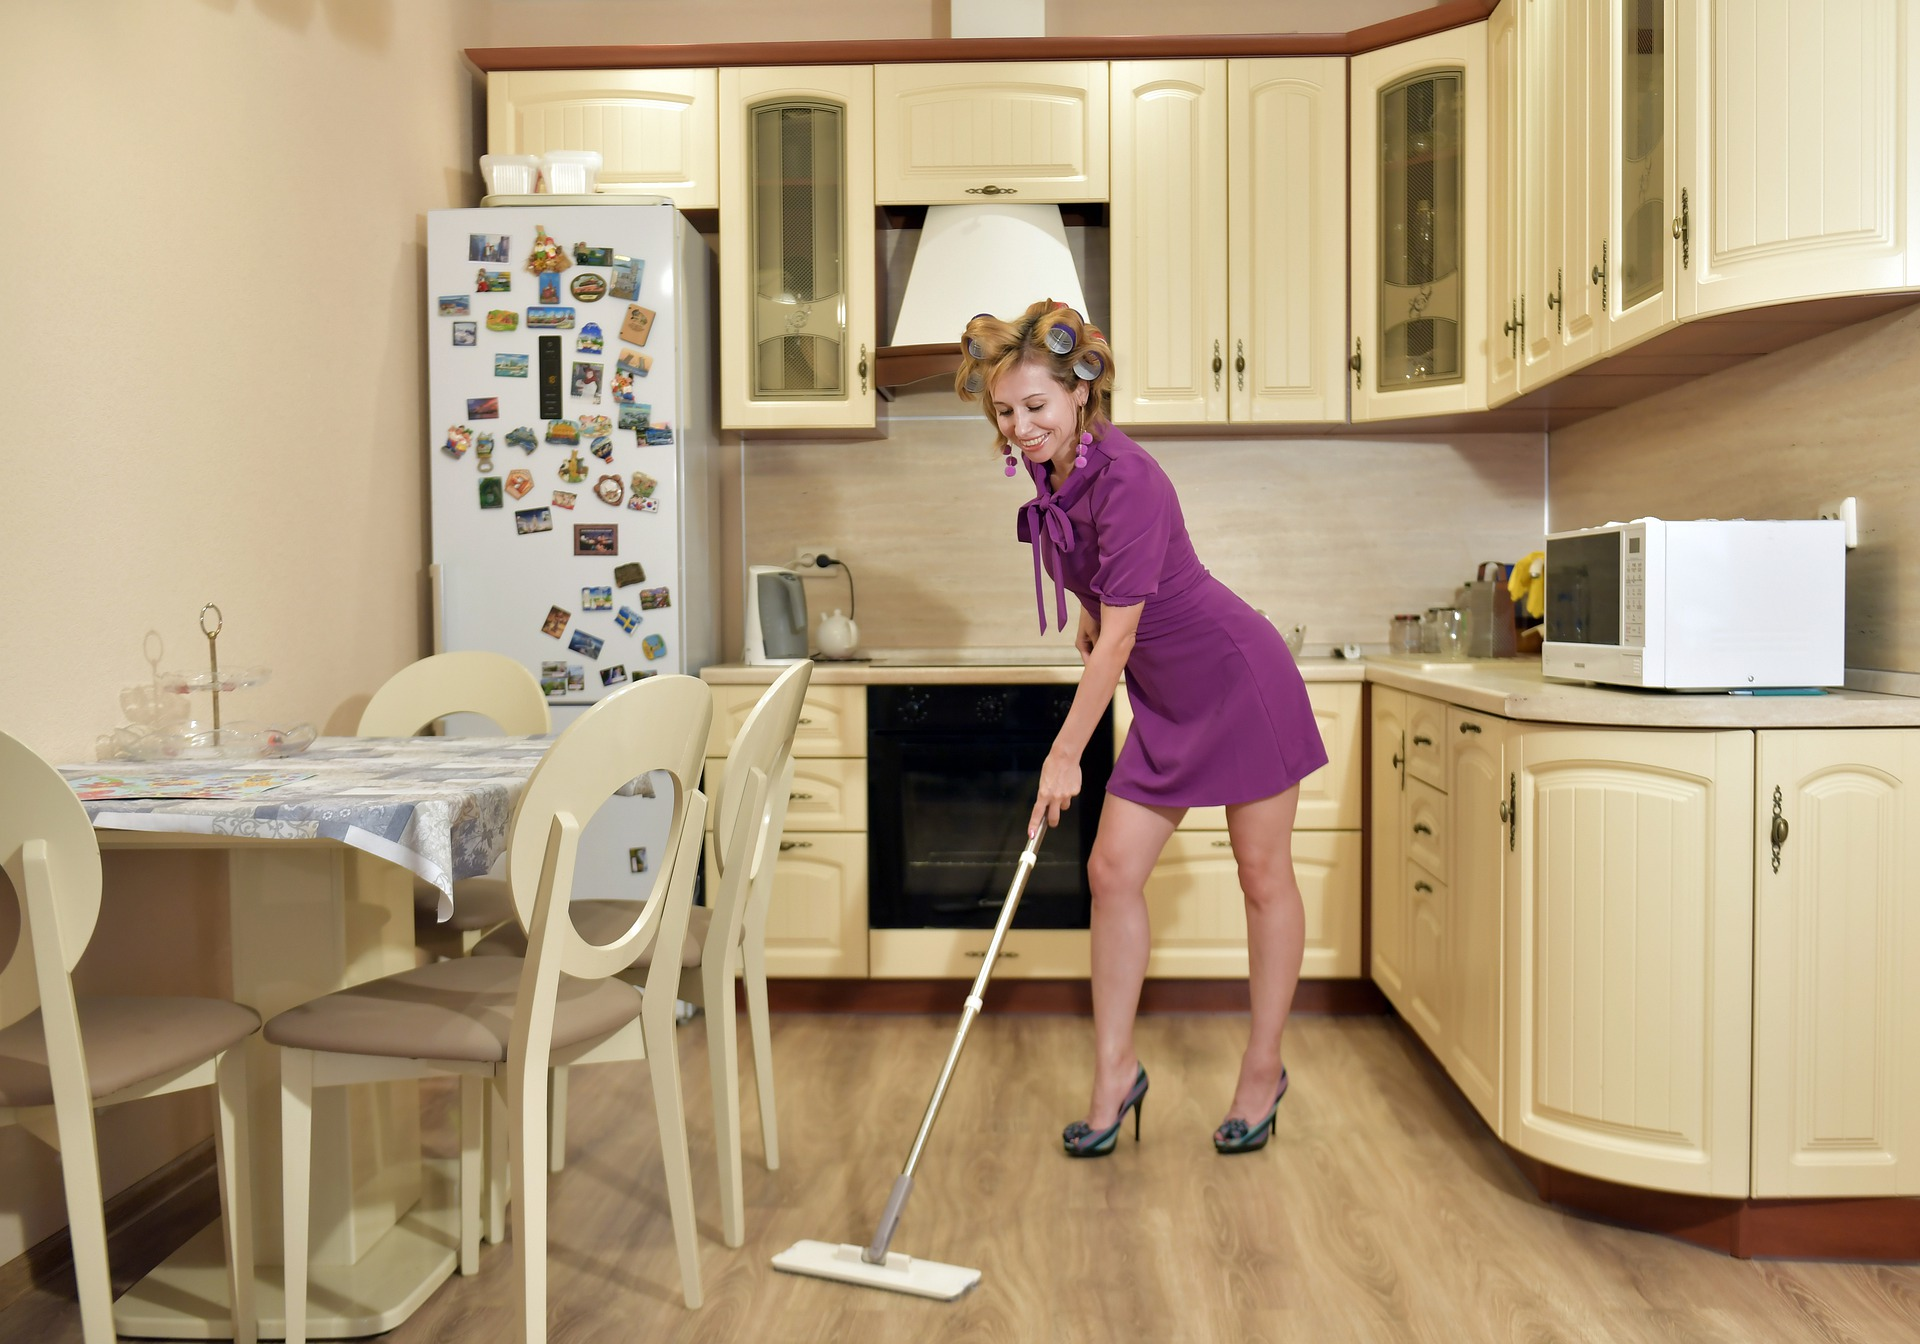 cleaning-5476949_1920